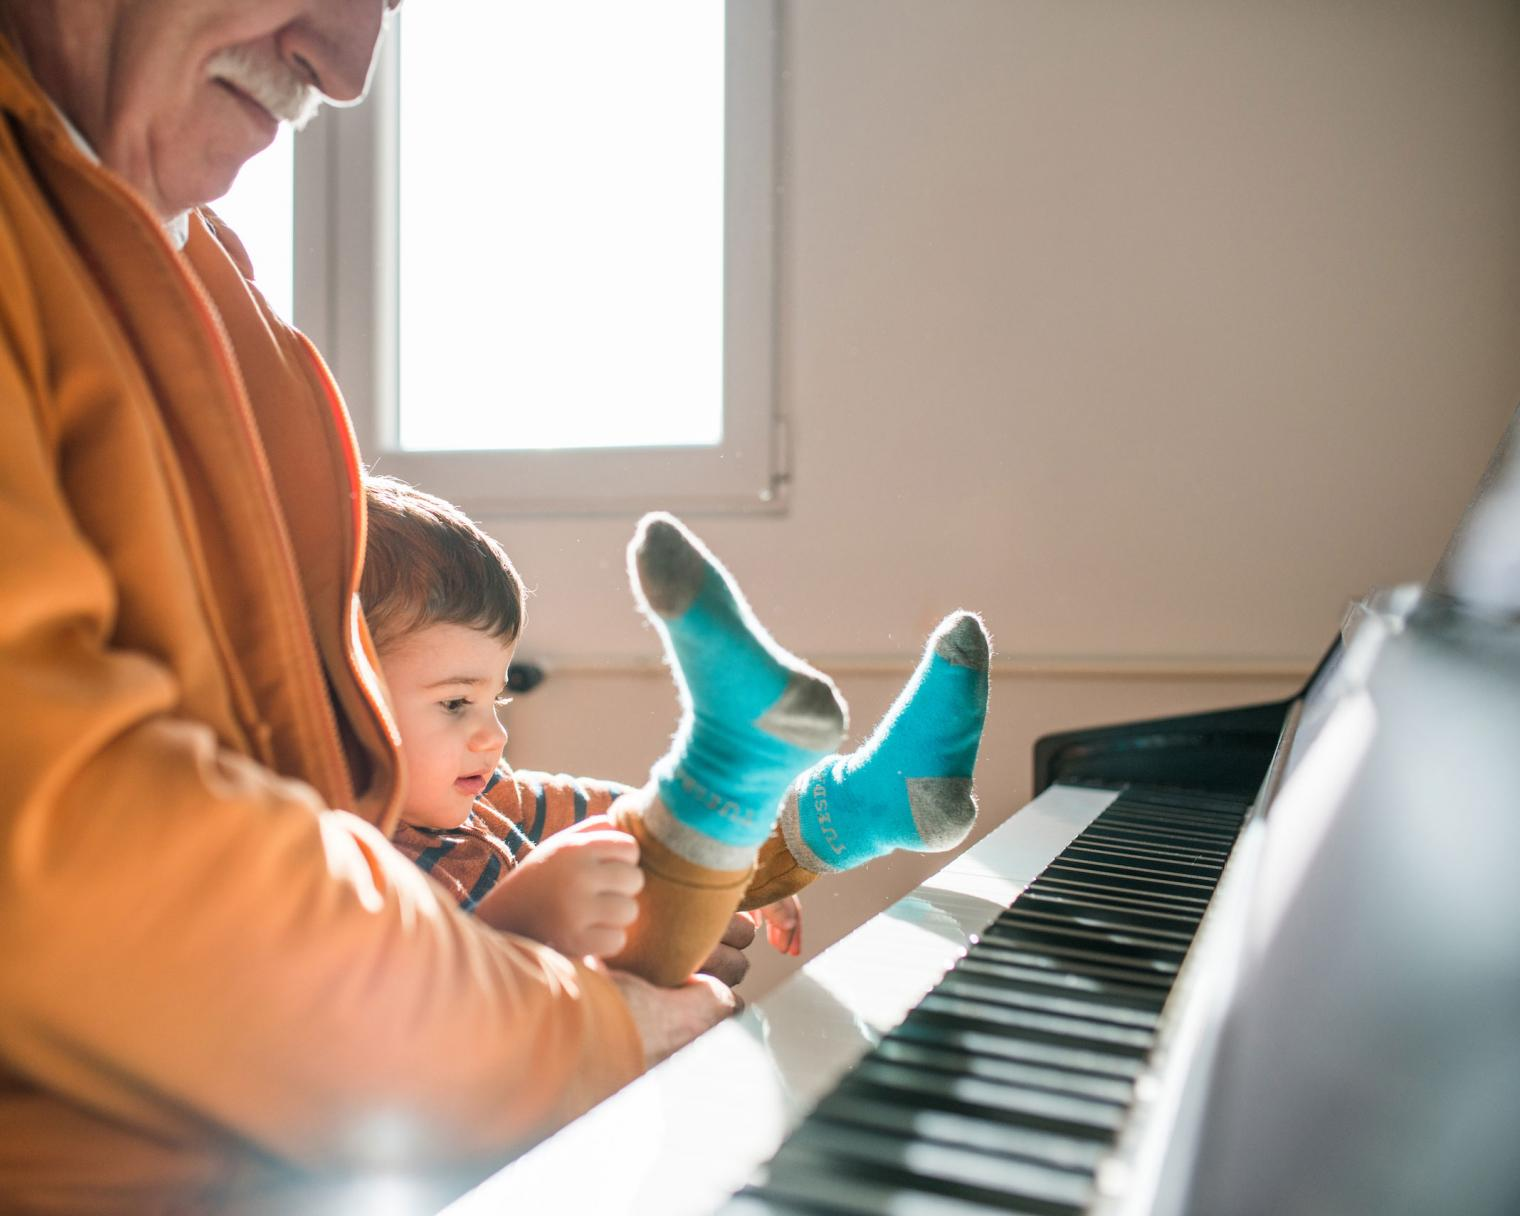 Grandfather and toddler sitting at a piano